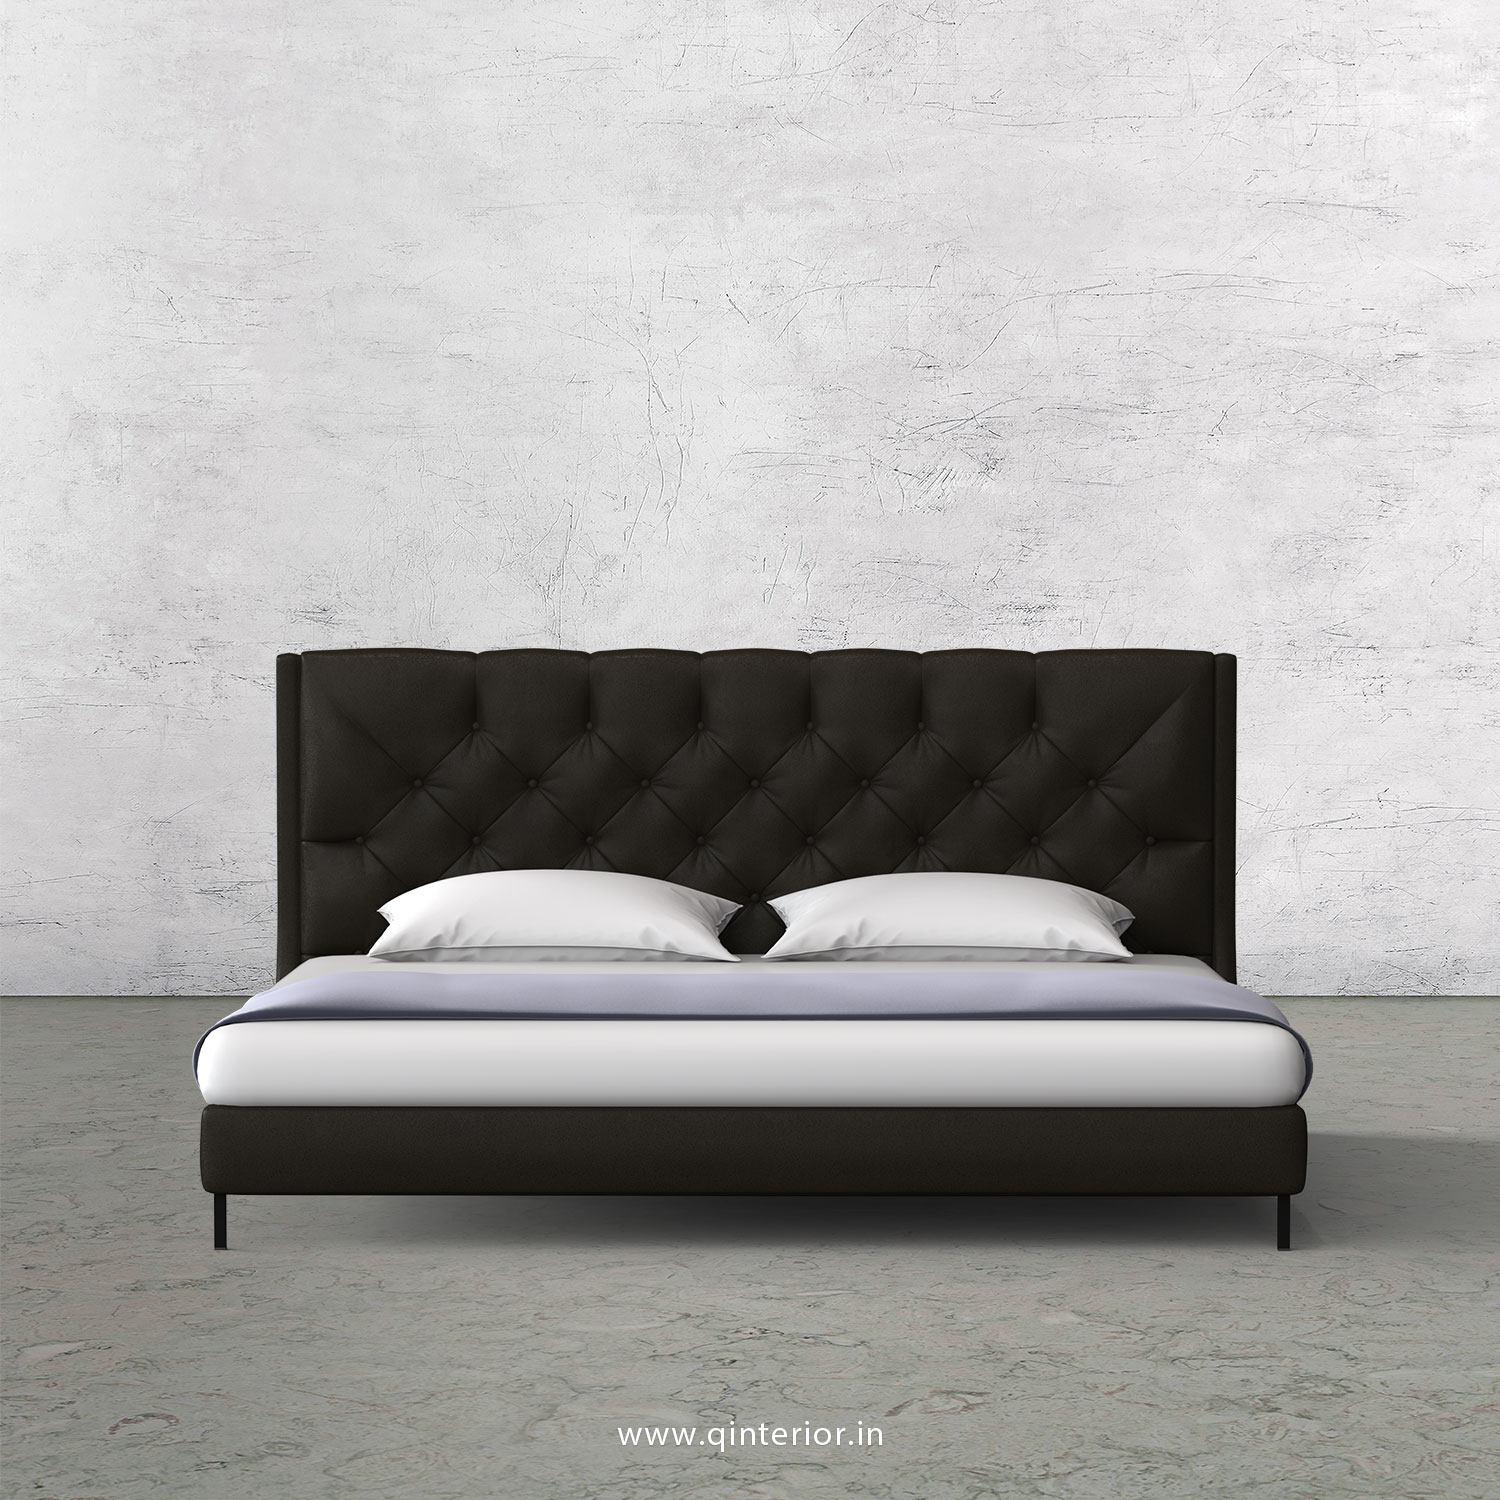 Scorpius Queen Size Bed with Fab Leather Fabric - QBD003 FL11